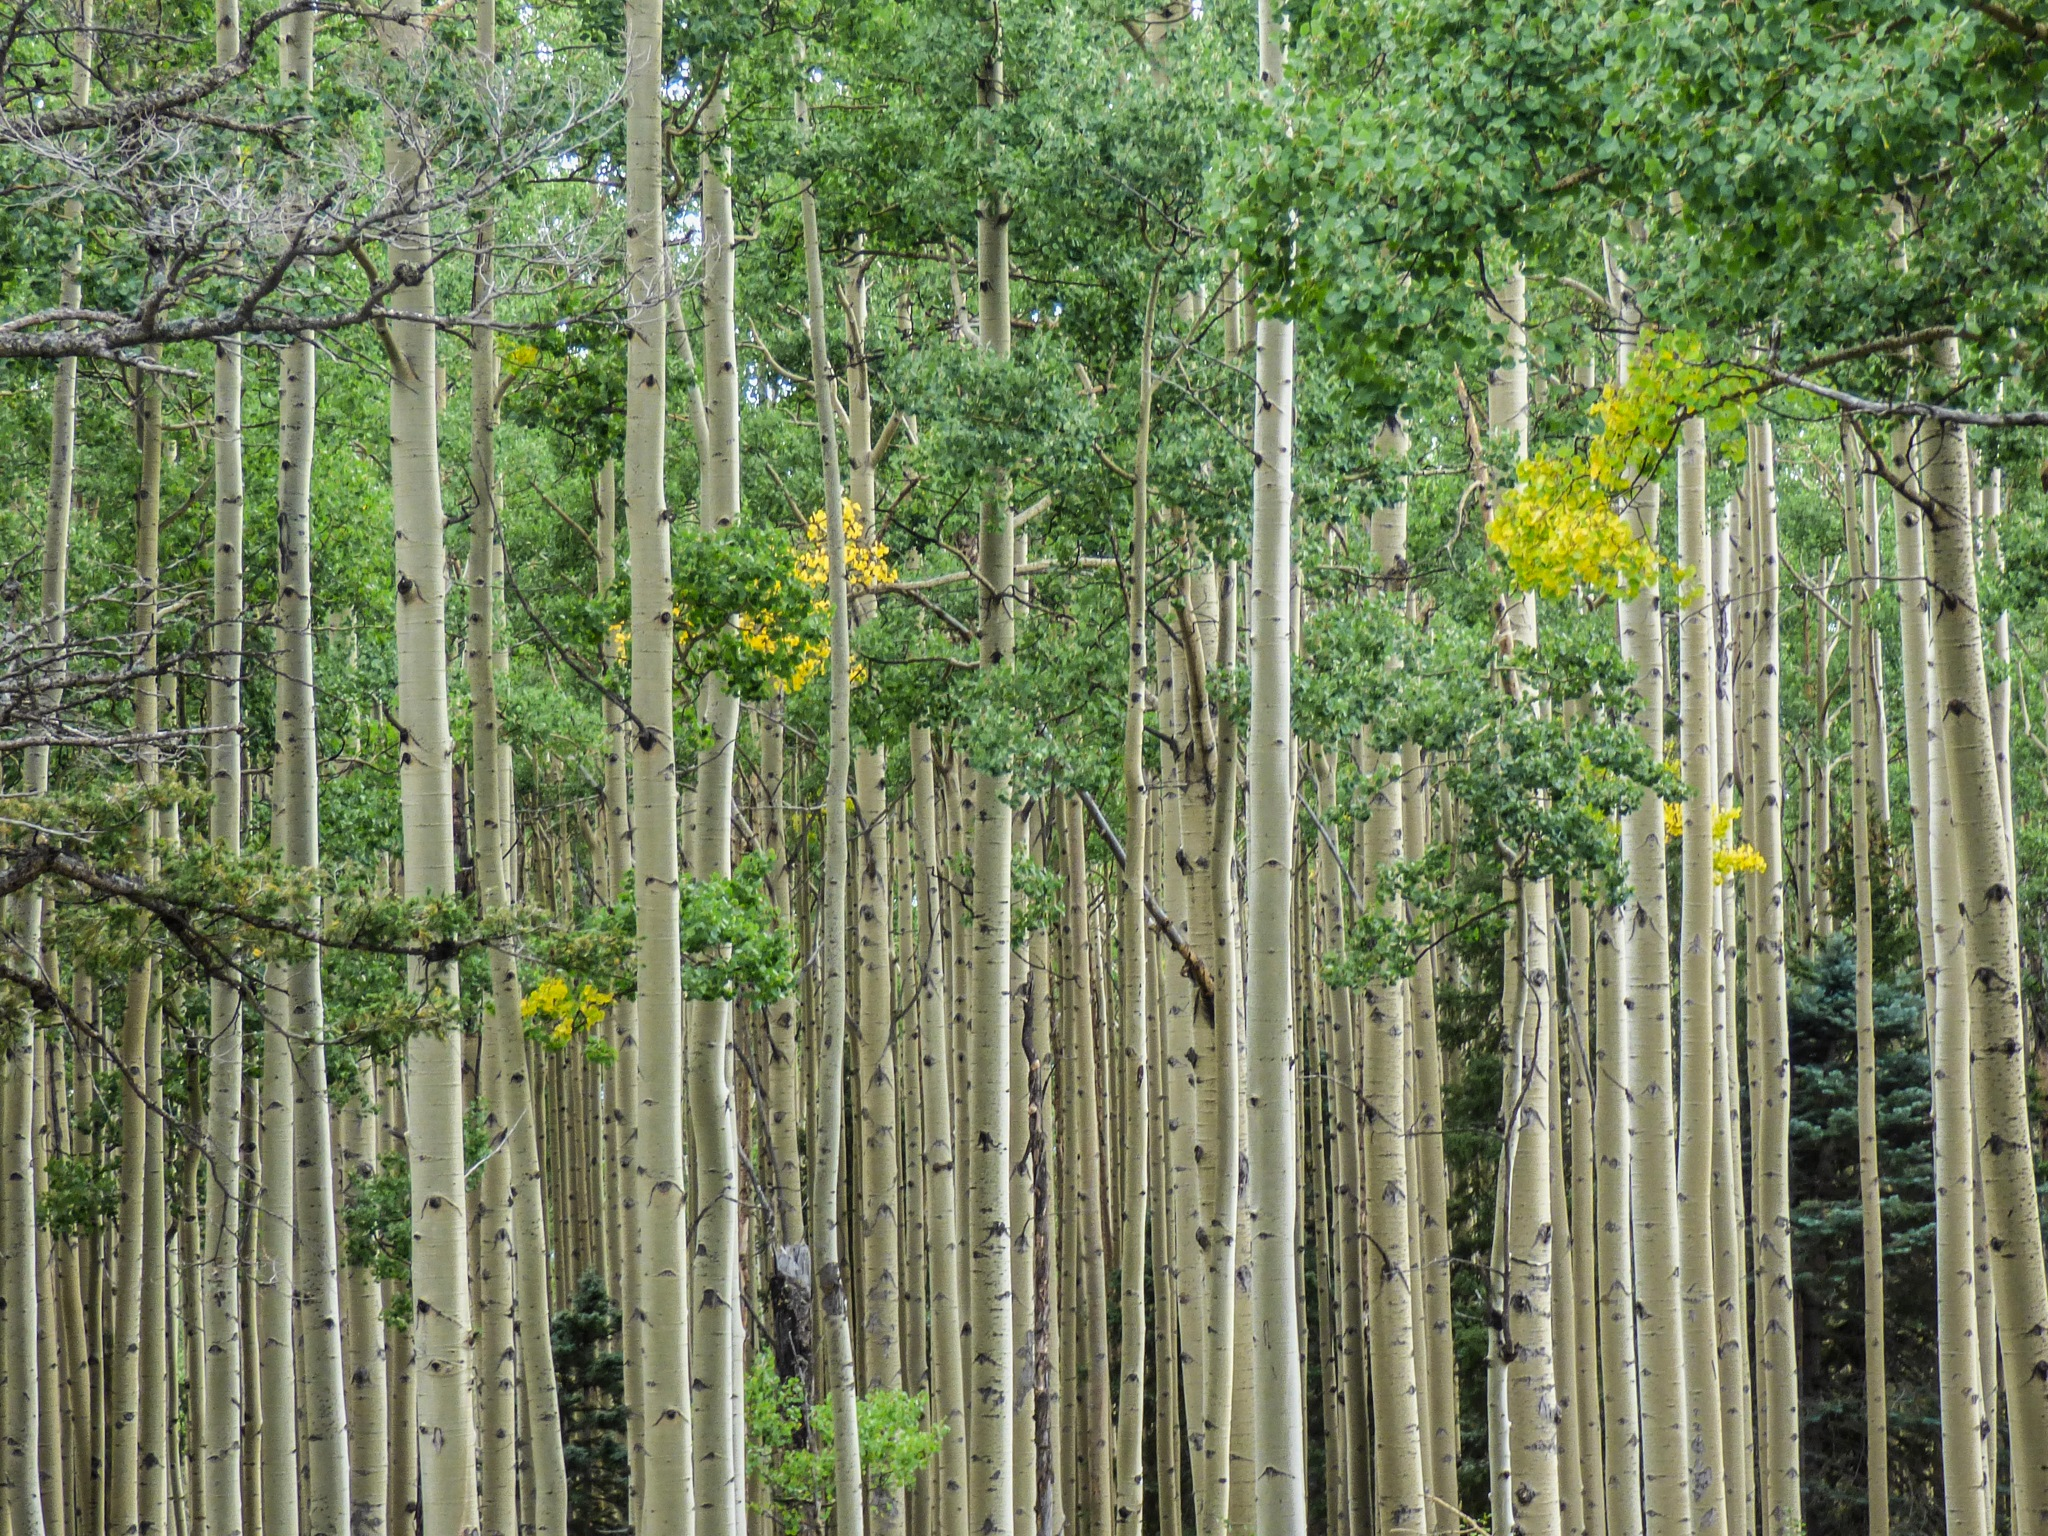 Aspens: my first downloads in a while (more to come) by Hunter Ten Broeck